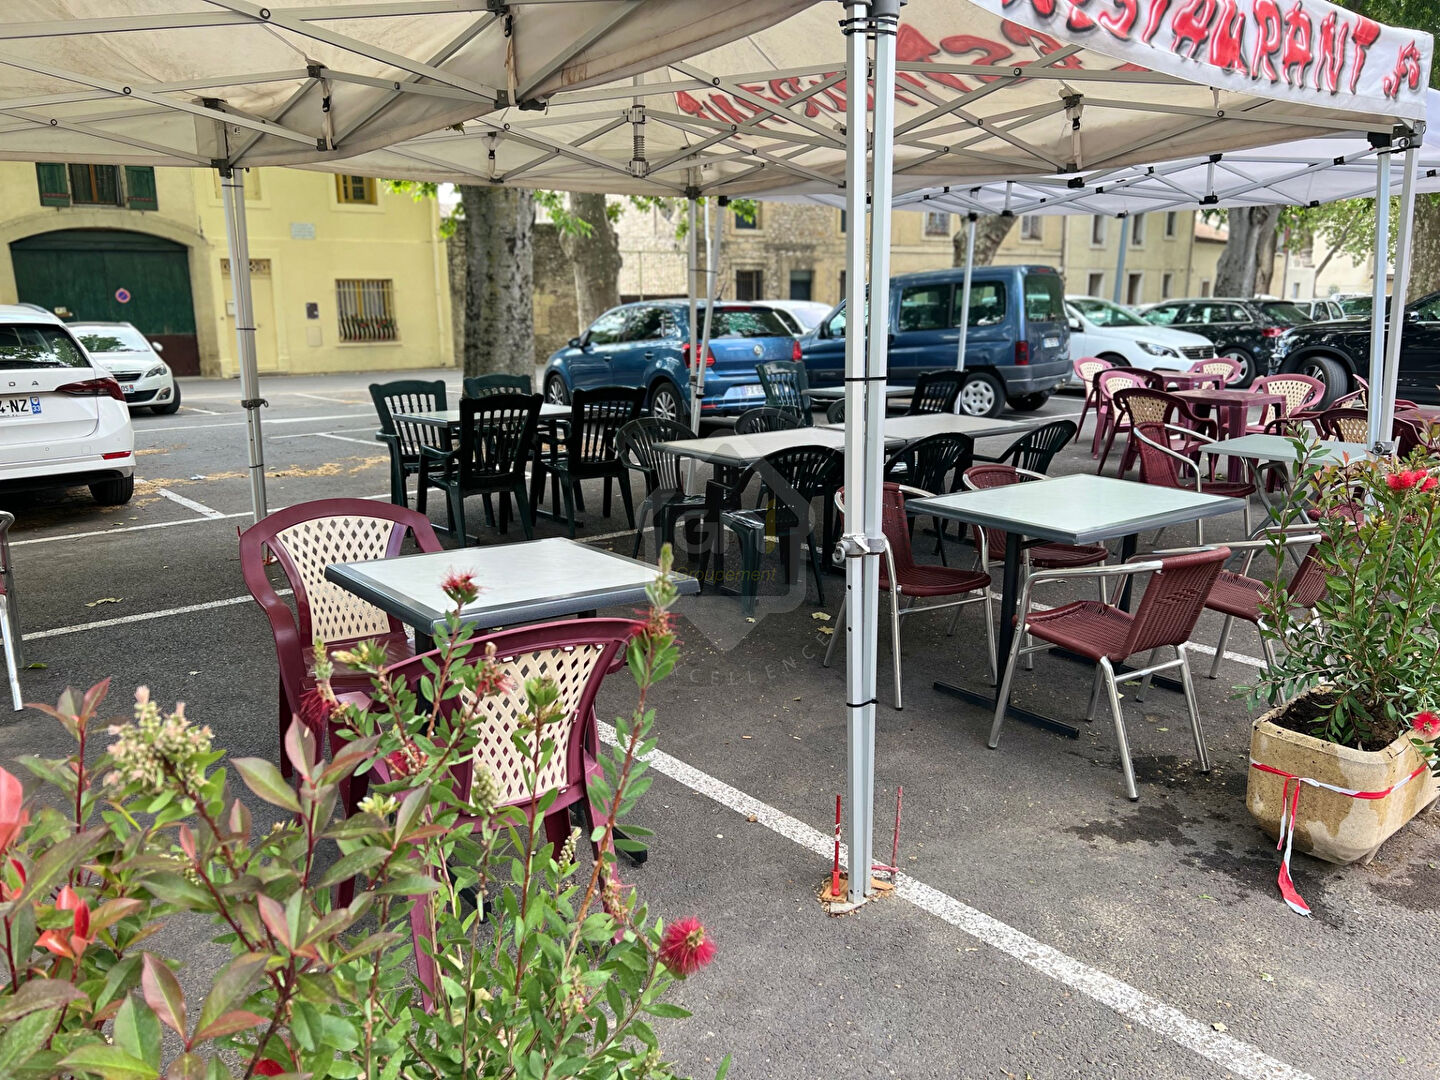 Fonds de Commerce - Bar / Restaurant - Brasserie